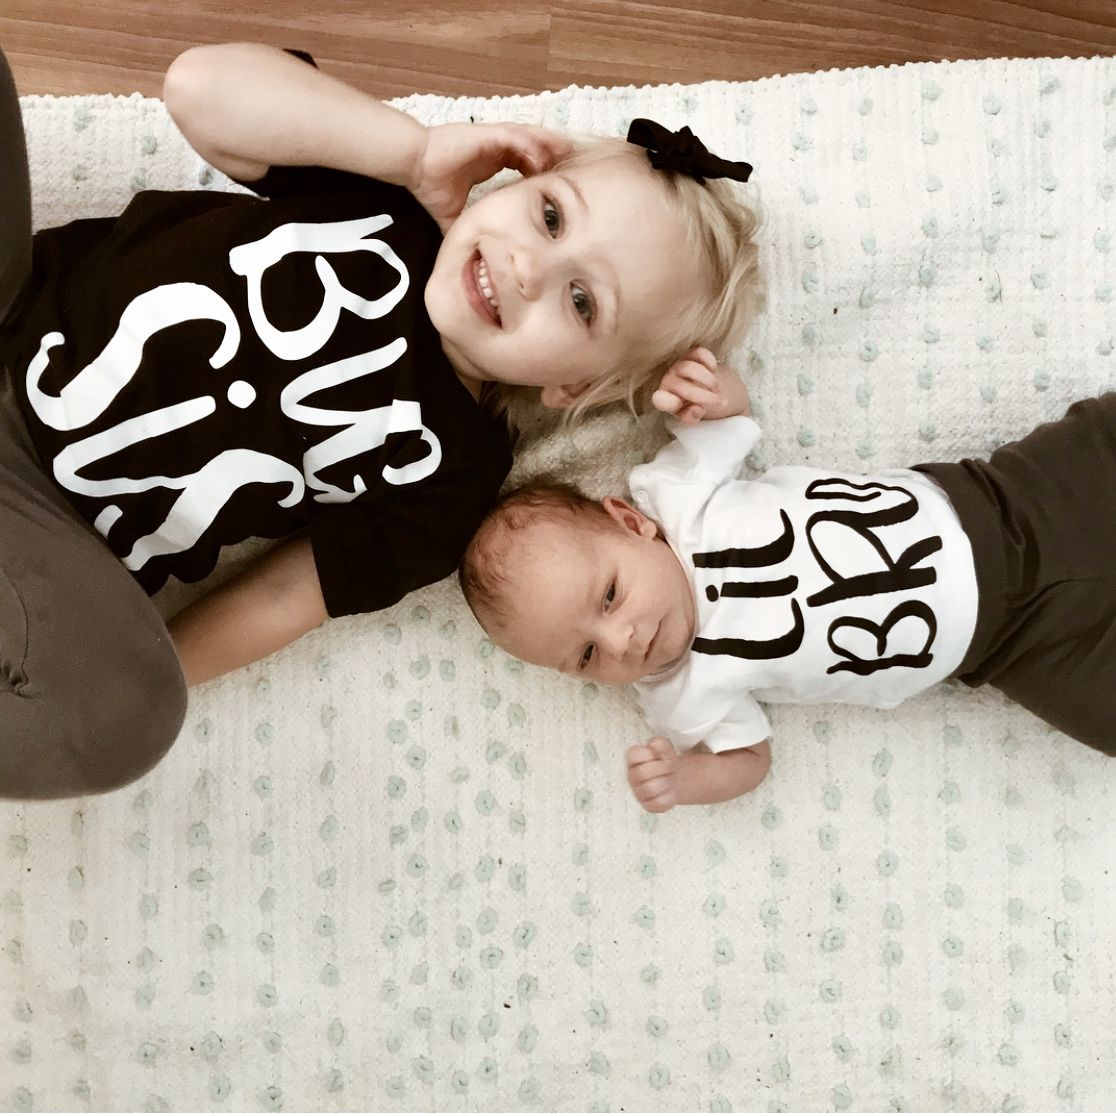 Matching Tops Tshirt Lil Bro Sister Family And White Black Casual Big Rompers Kids